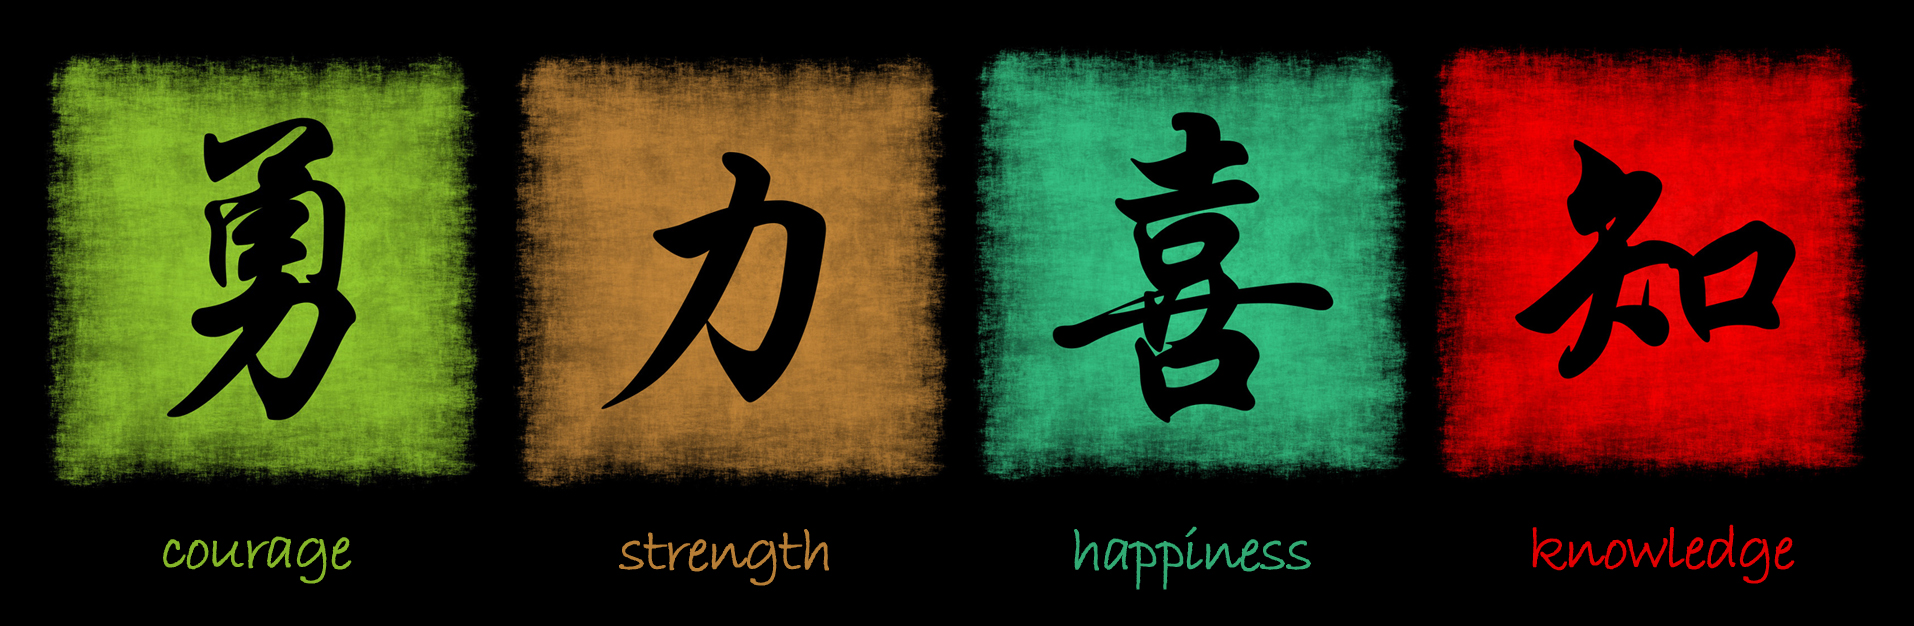 Courage Strength Happiness Knowledge